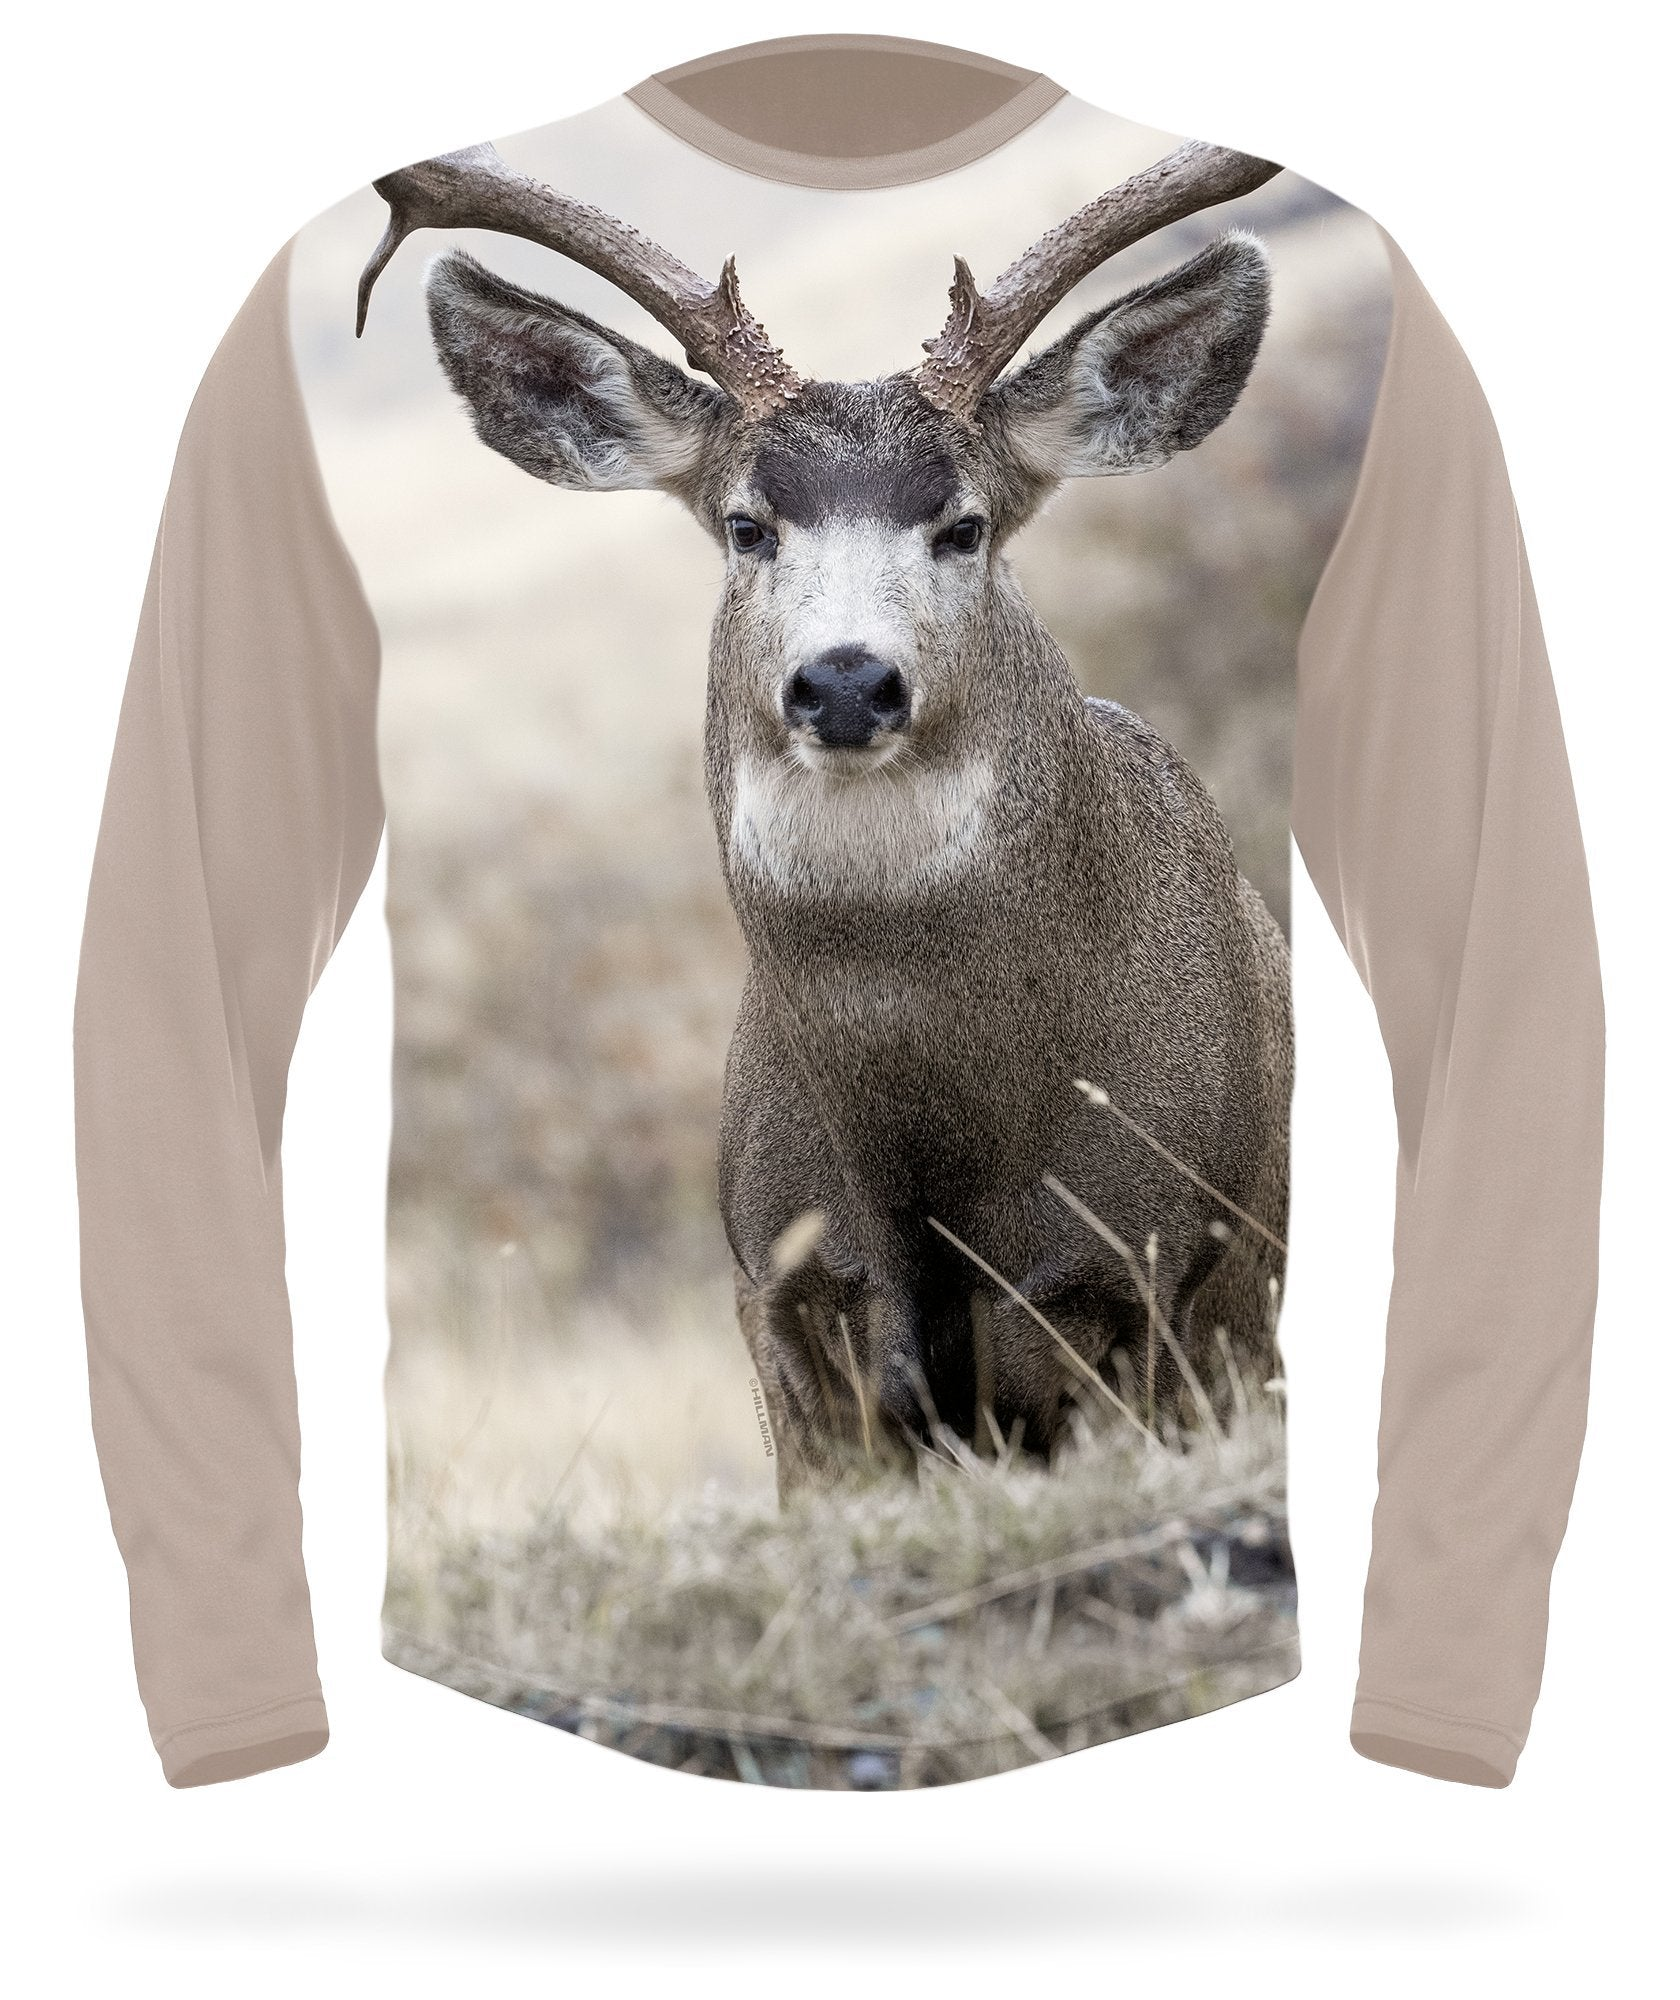 Mule deer T-shirt Field Scene Long Sleeve - HILLMAN® hunting gear